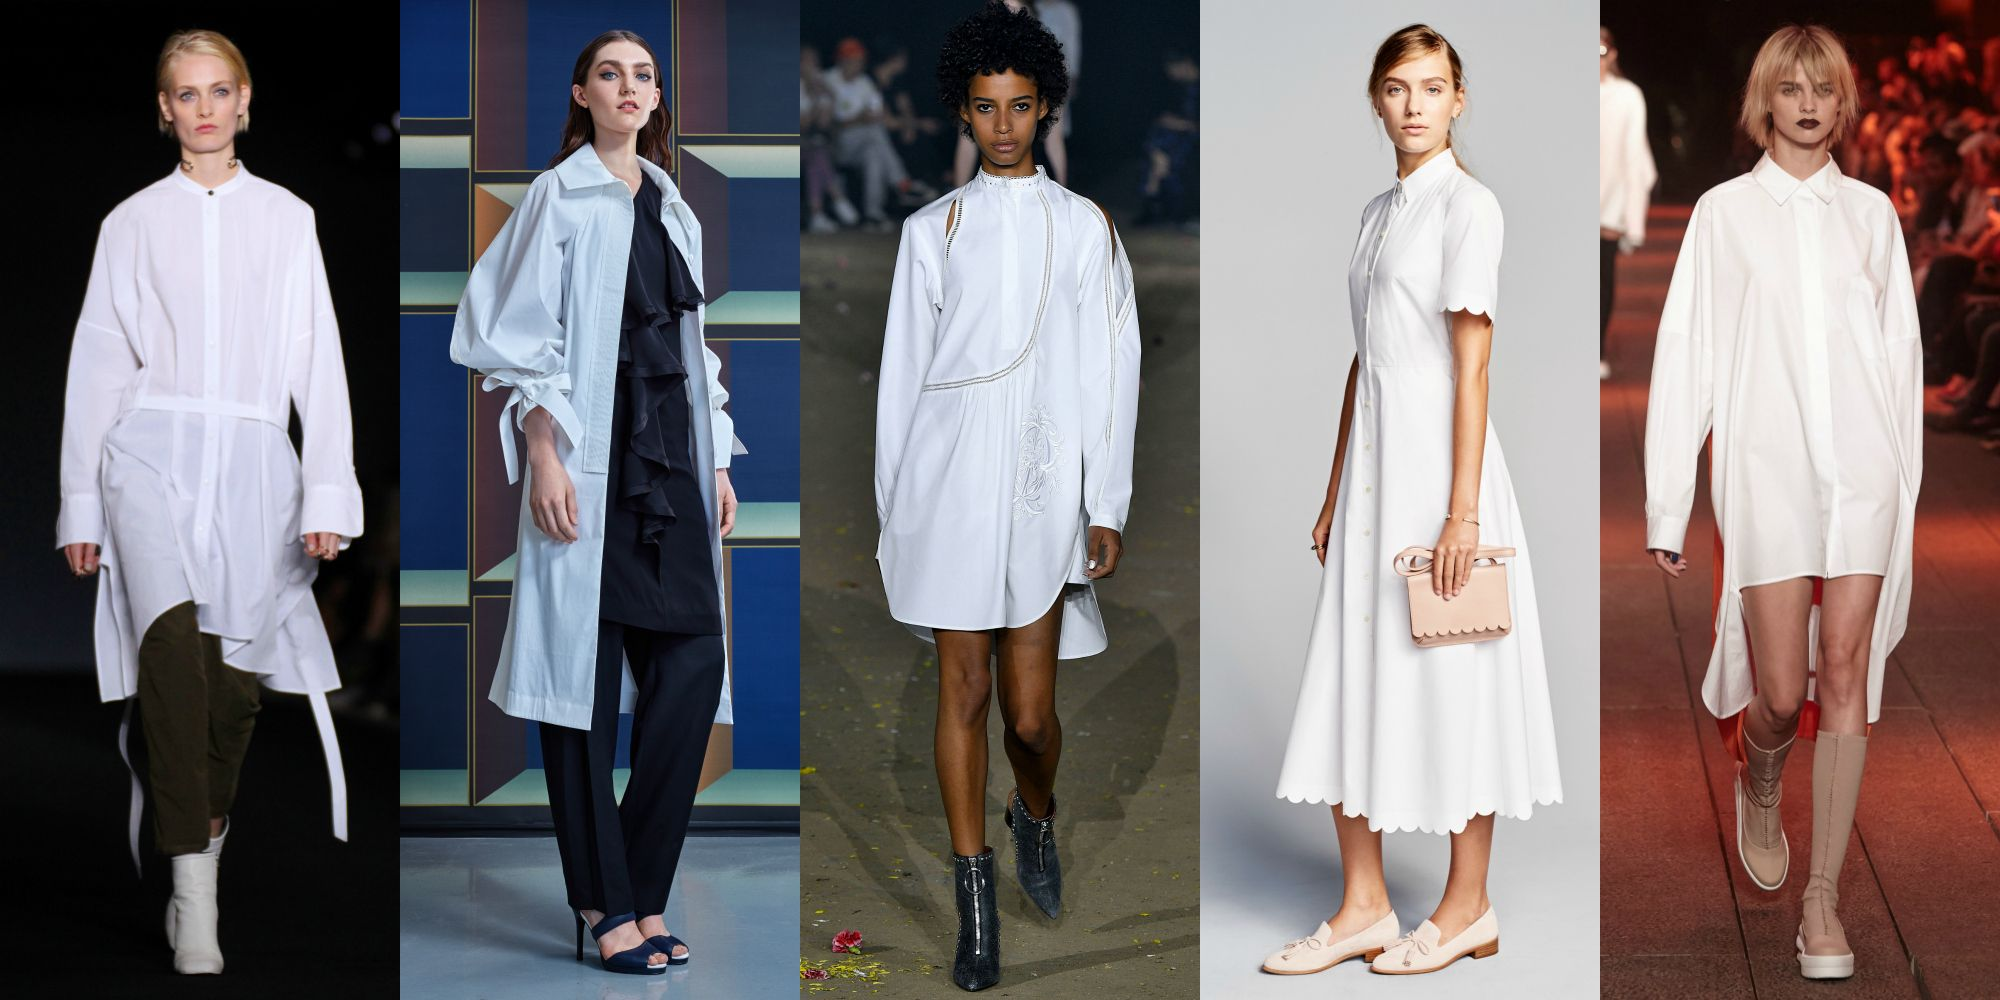 The Top Trends From Spring 2017 New York Fashion Week: White Shirt Dresses